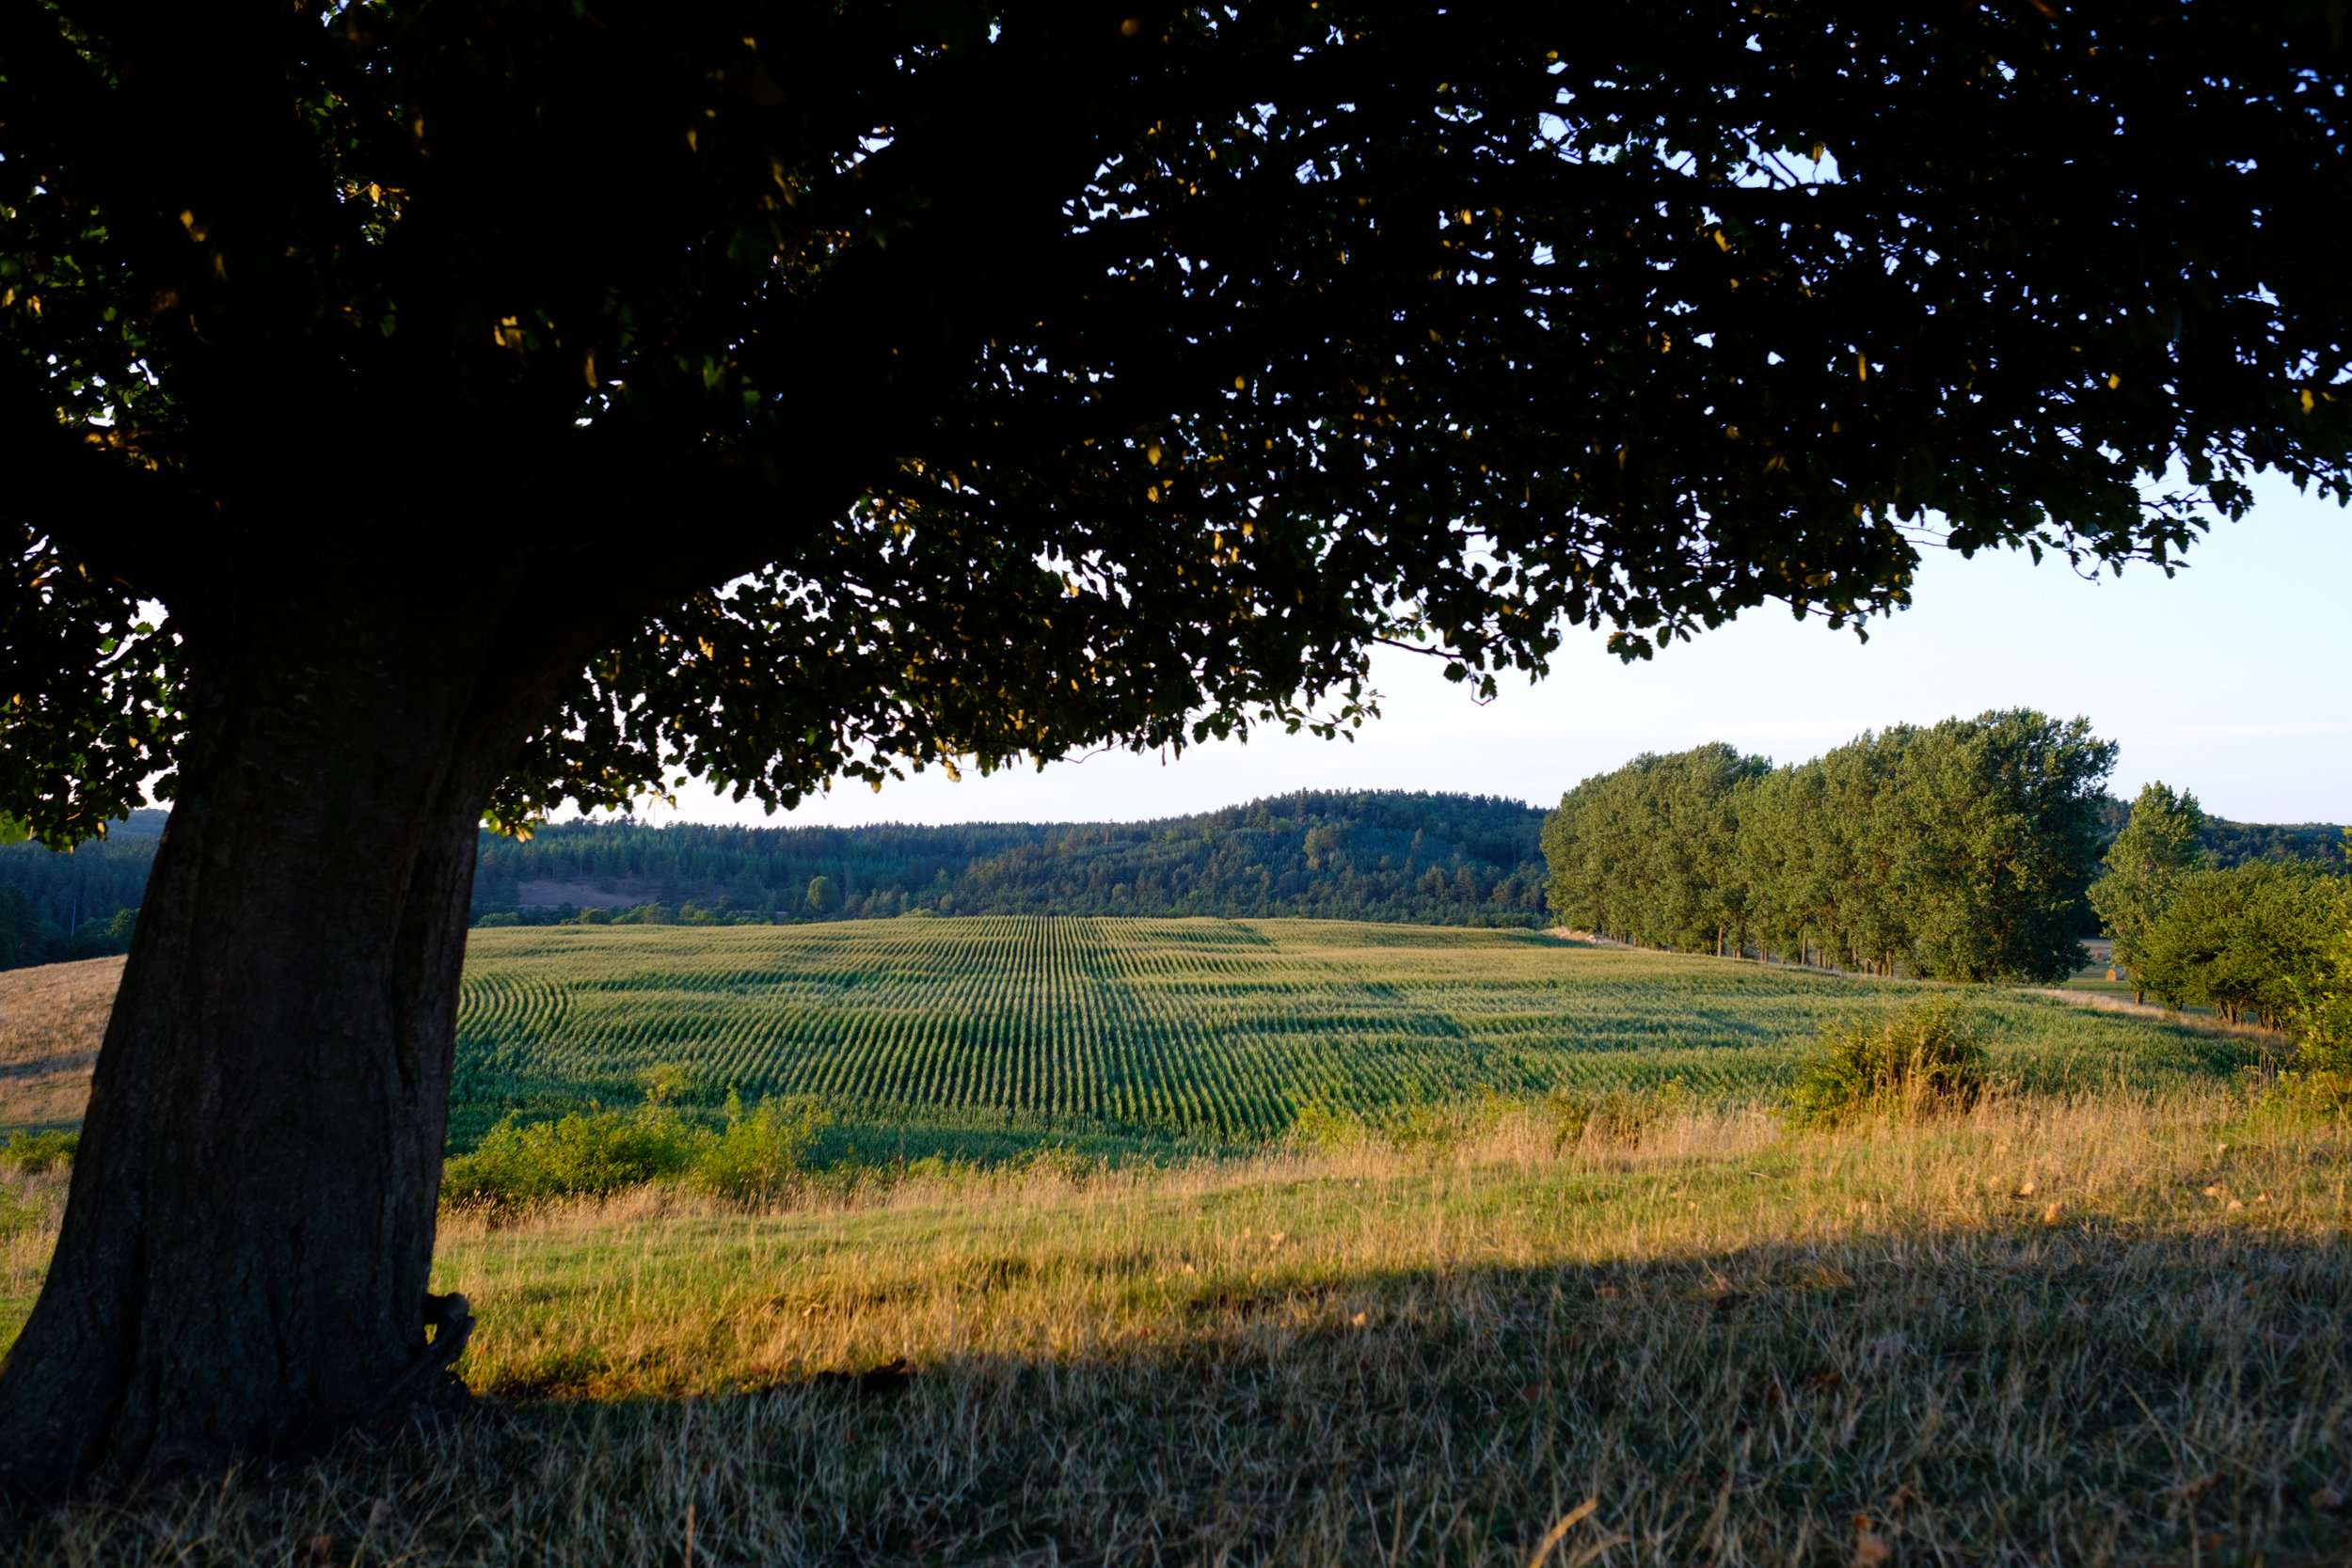 The view of a field from the hills of Brosarp in Skåne Sweden